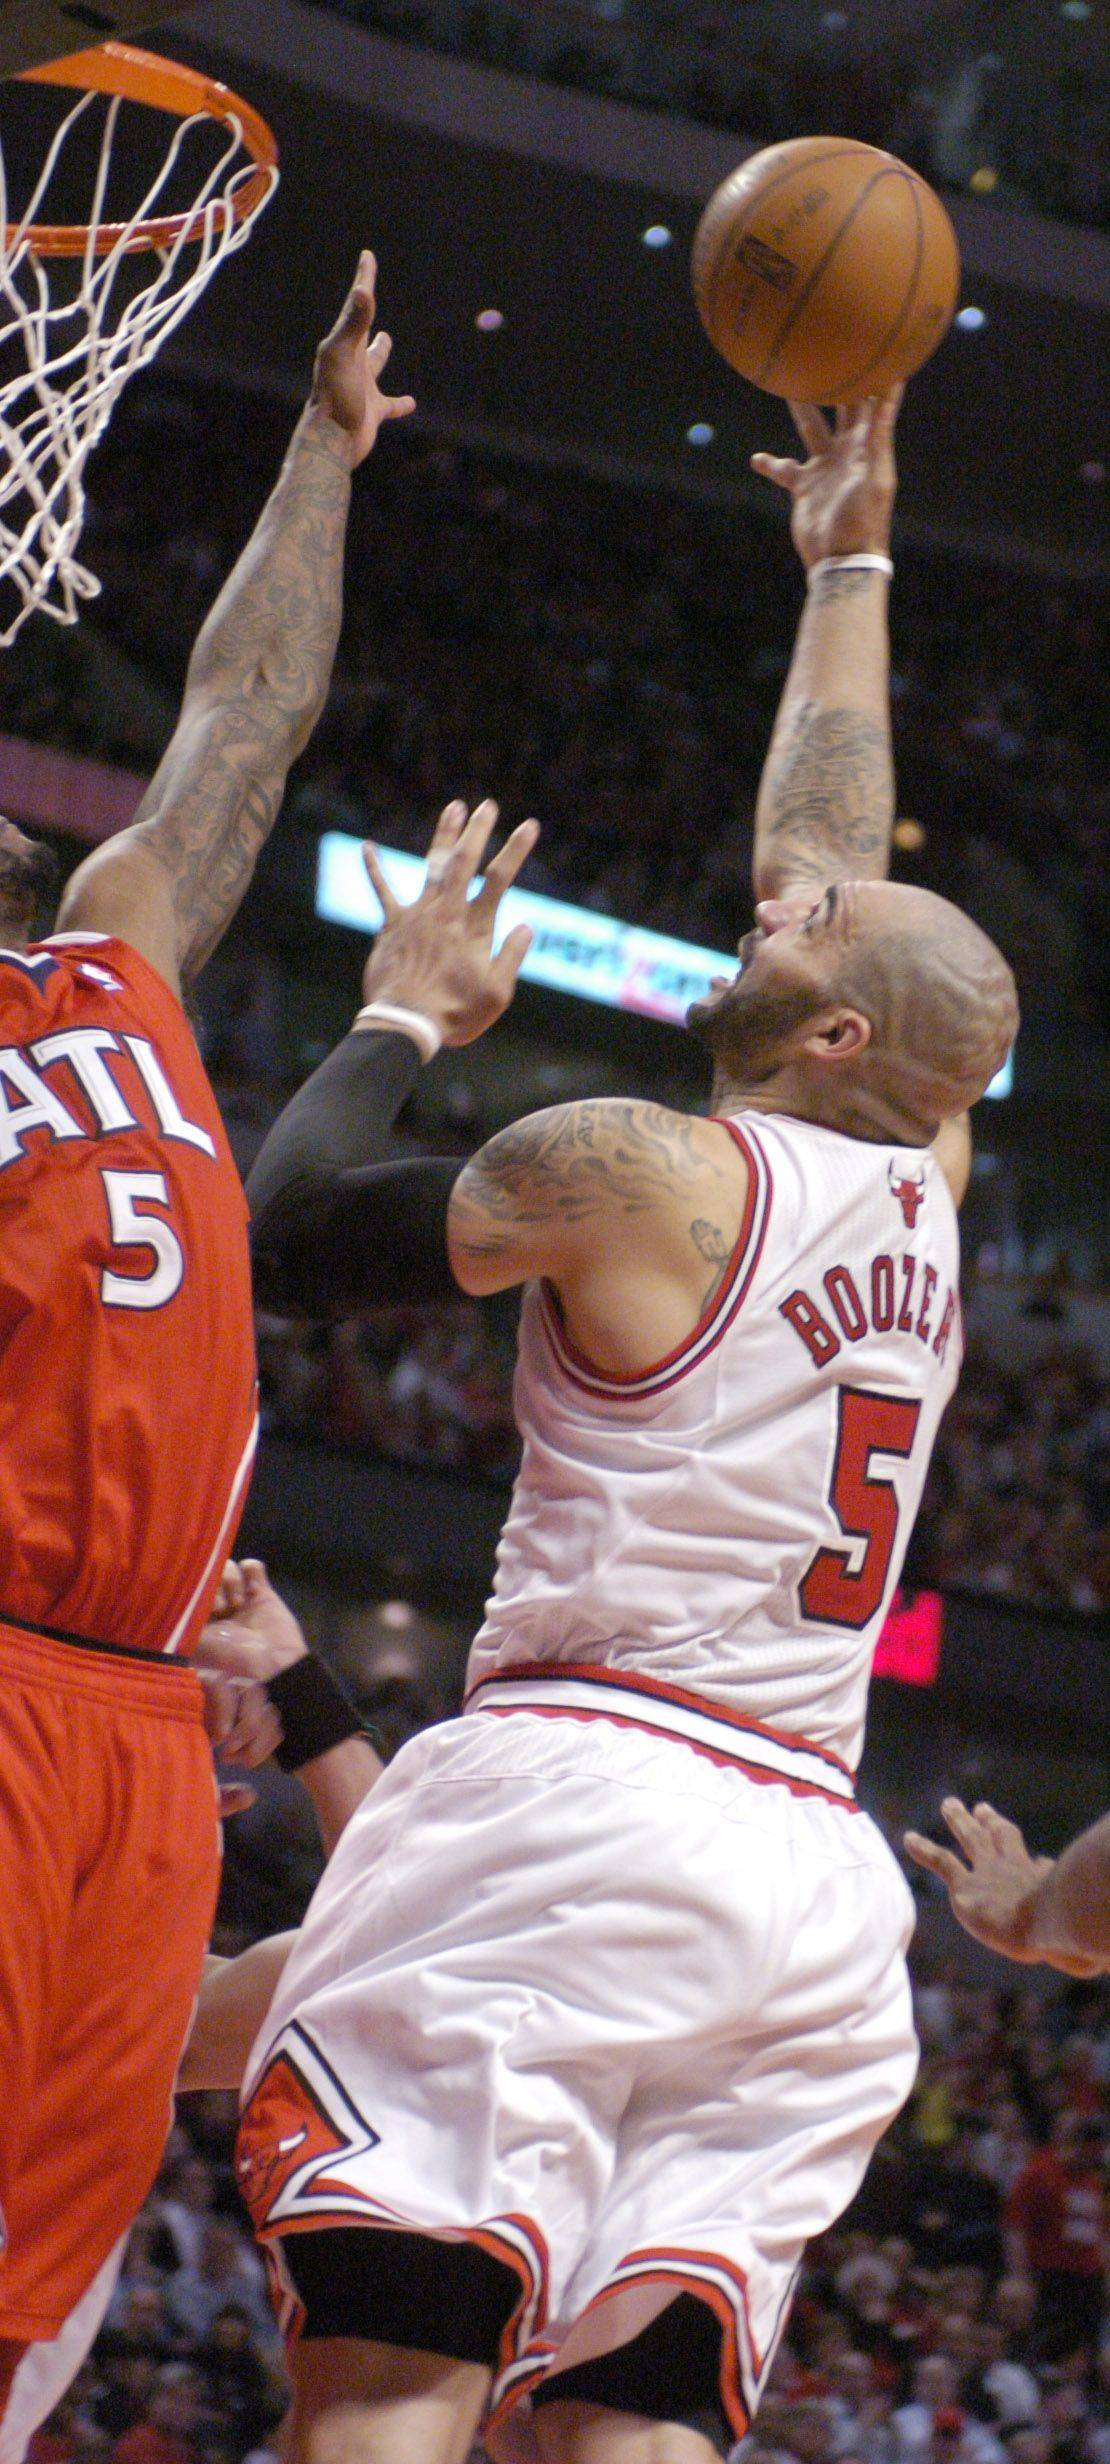 Carlos Boozer makes a shot in the low post Wednesday against the Hawks.